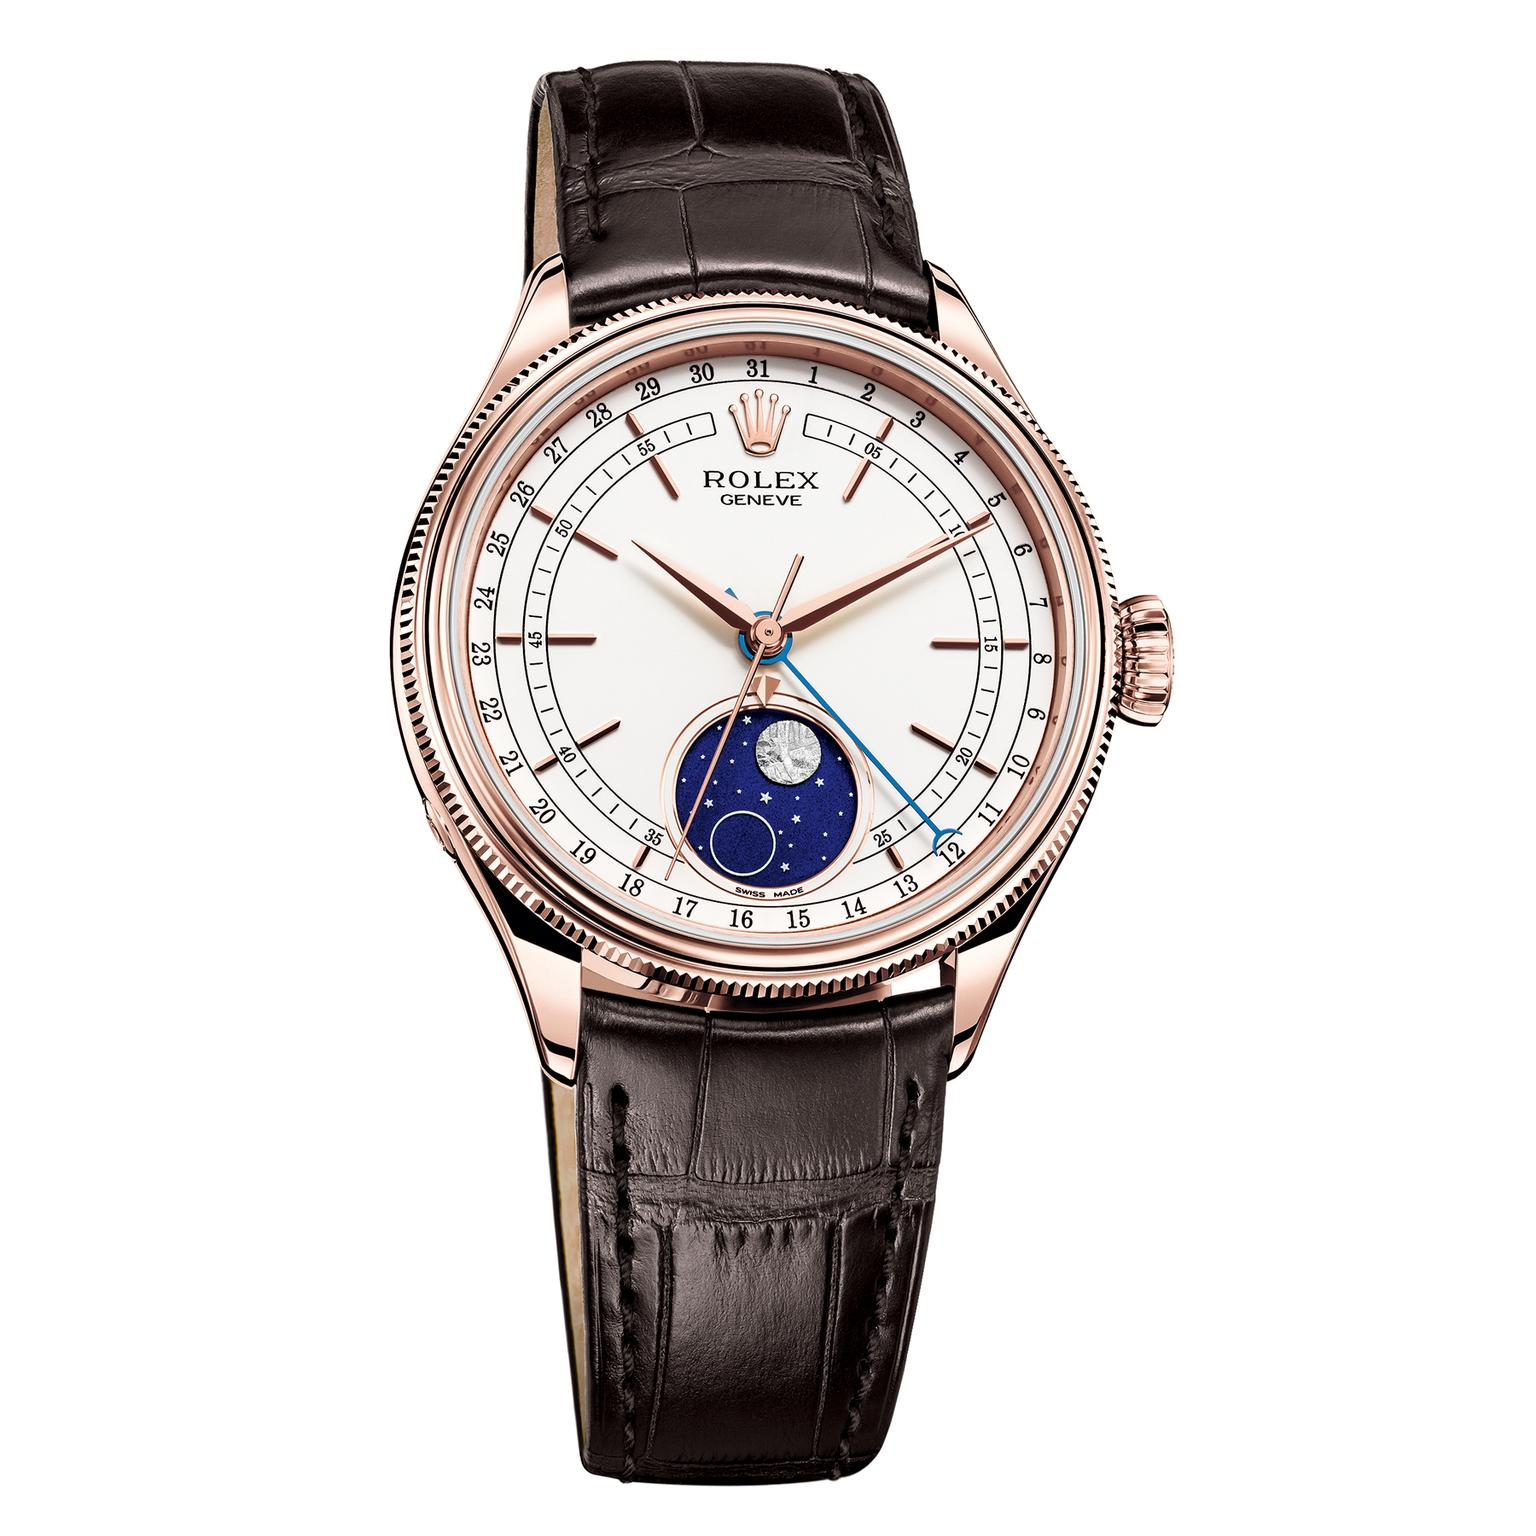 Rolex Cellini Moonphase watch in Everose gold